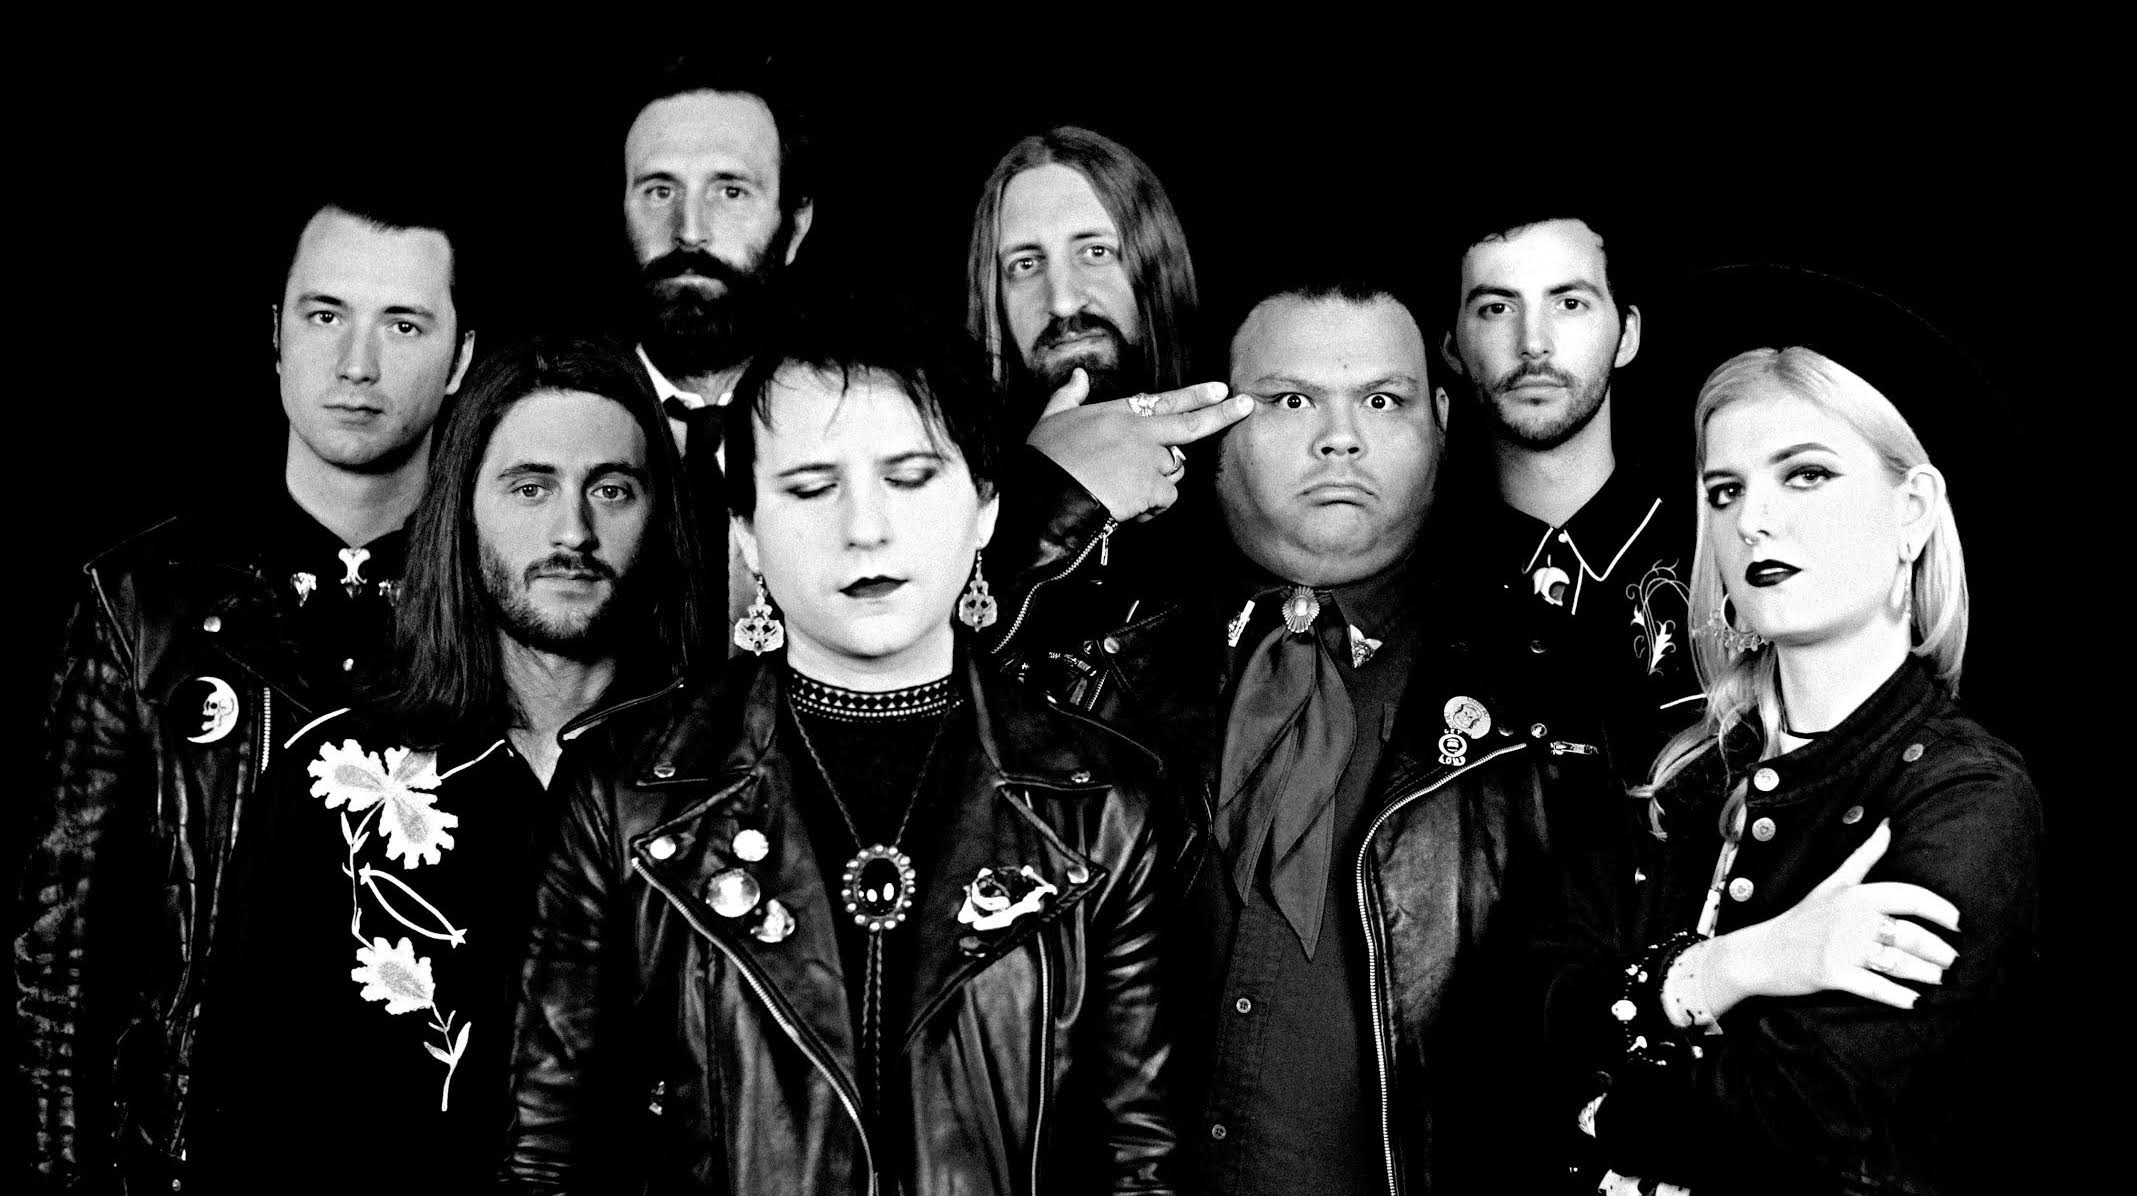 """SONG PREMIERE: Roselit Bone Collide Bar Band Glory With Cowpunk Rowdiness on """"Proving Grounds"""""""